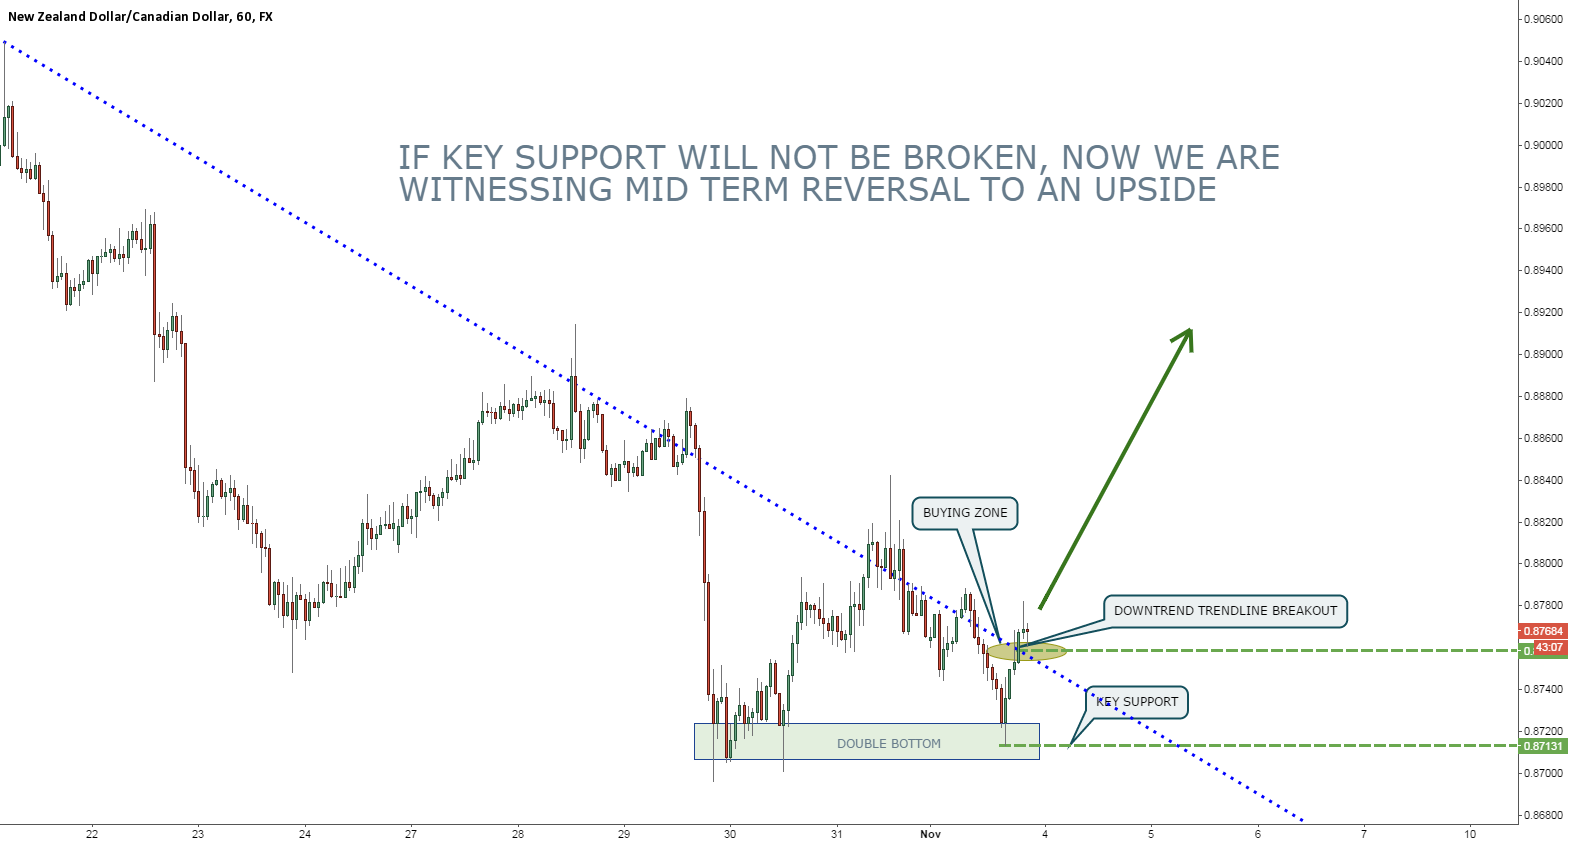 NZDCAD confirming the reversal